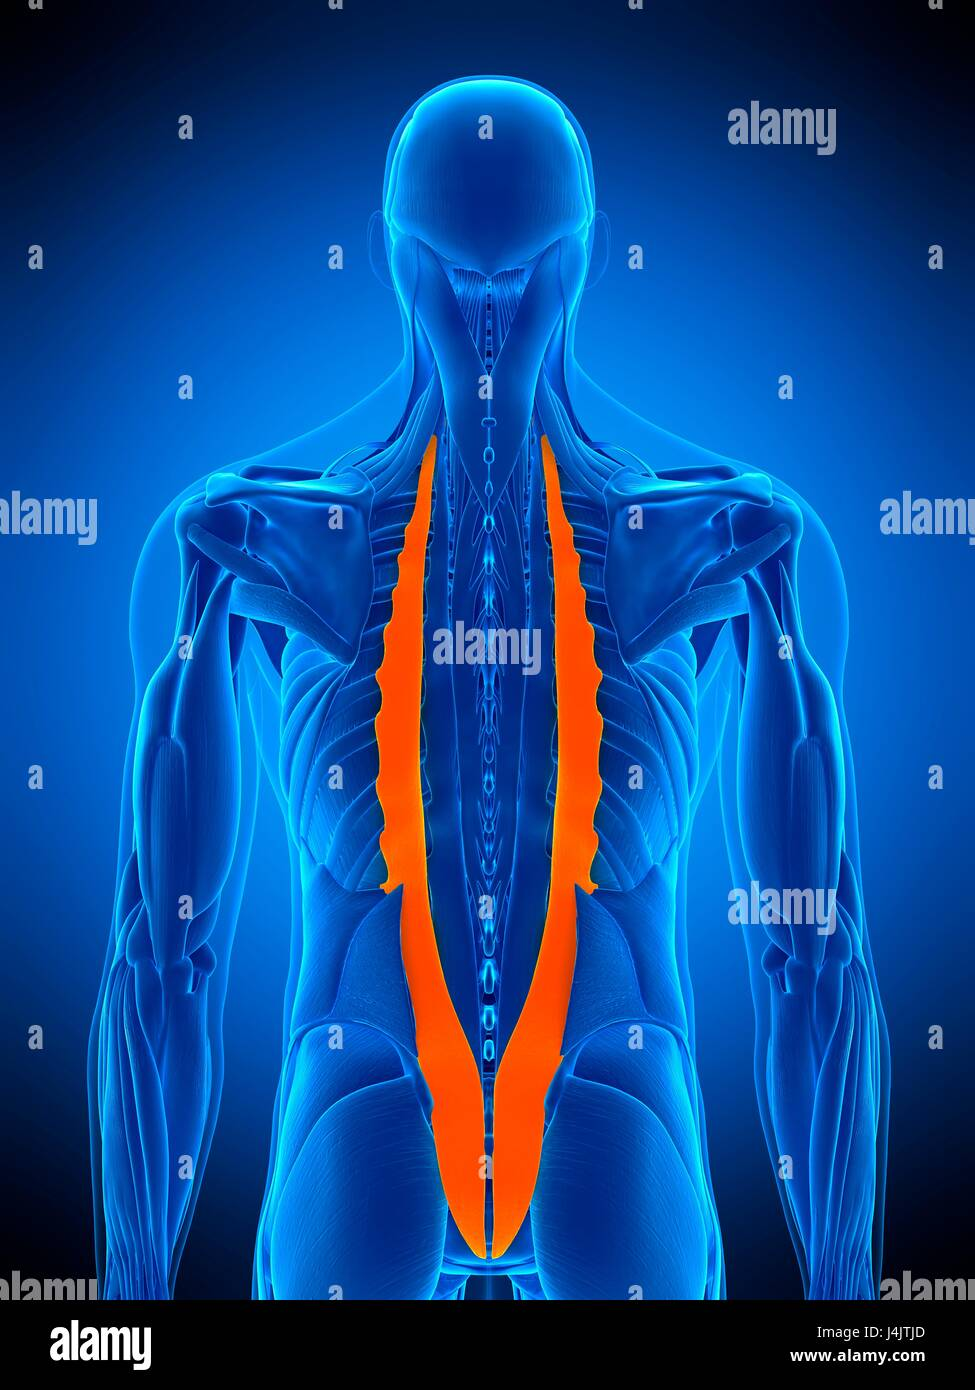 illustration of the iliocostalis muscle stock photo 140556037 alamy